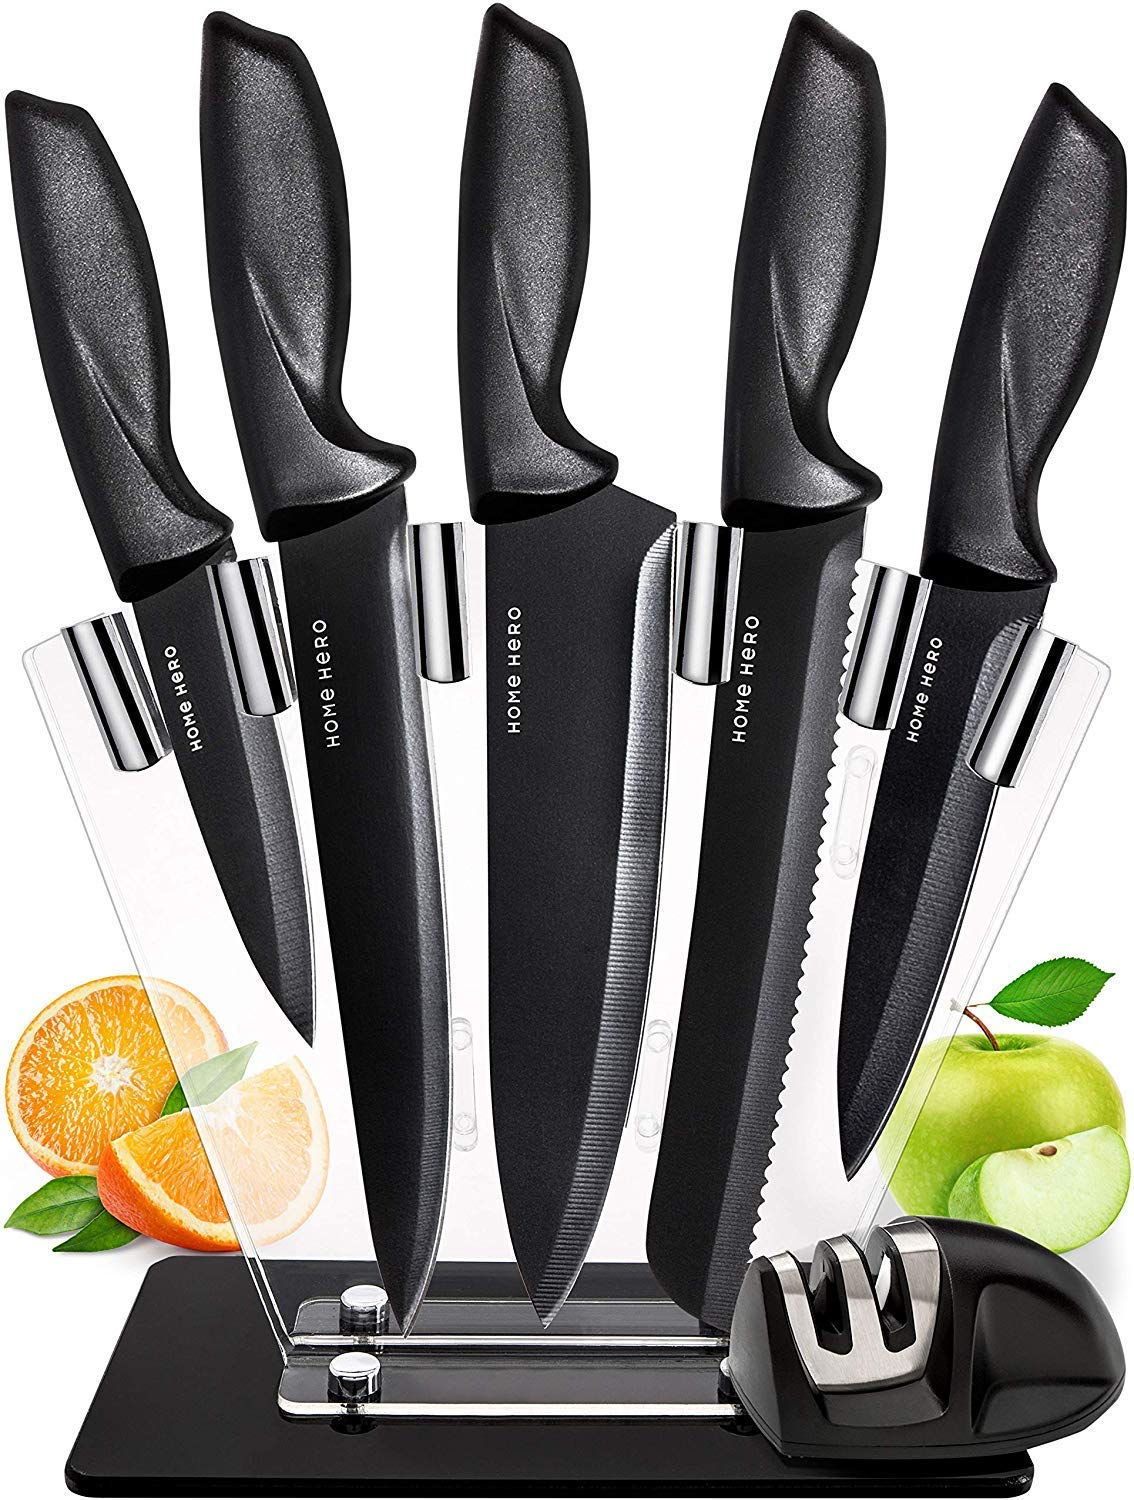 10 Best Kitchen Knife Sets In 2020 Buying Guide And Reviews